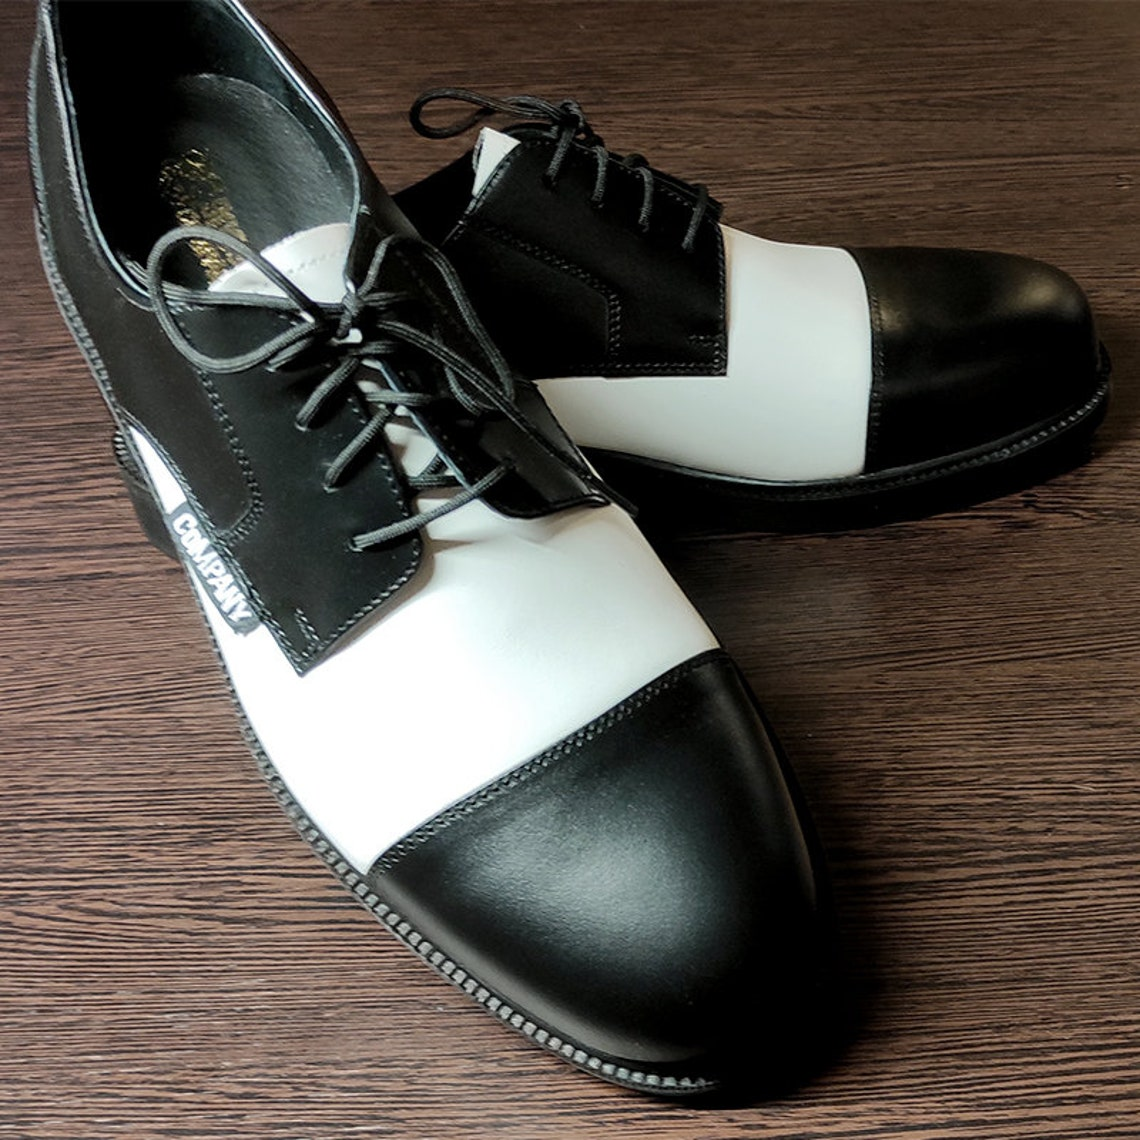 1950s Style Shoes | Heels, Flats, Boots Black and White Vintage Style Rockabilly shoes swing shoes - real leather $139.35 AT vintagedancer.com